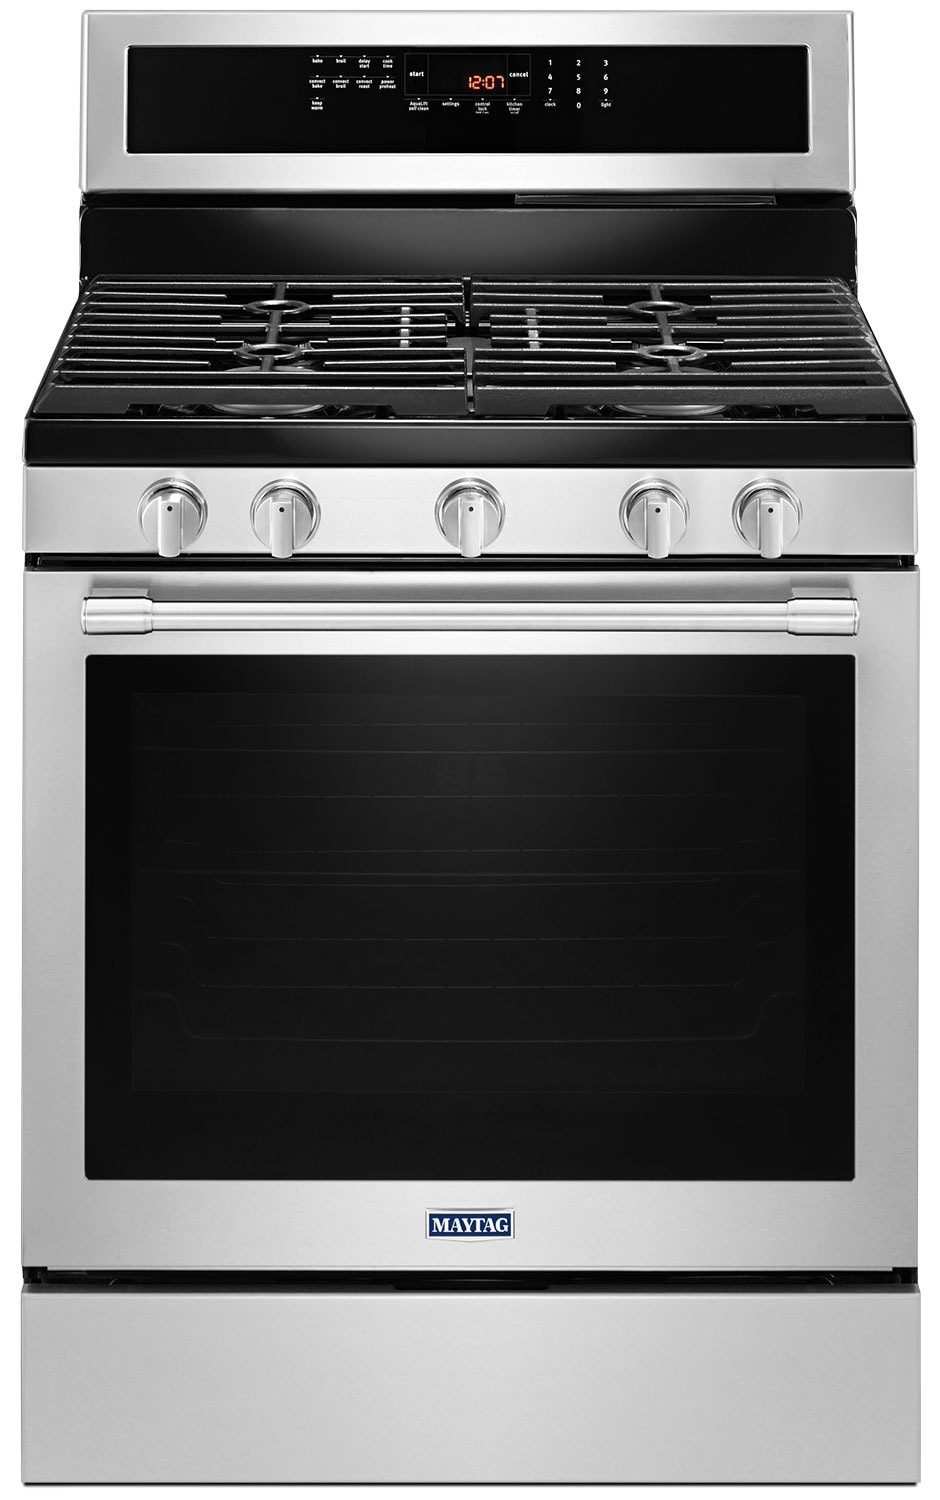 Cooking Products - Maytag 5.8 Cu. Ft. Freestanding Gas Range – MGR8800FZ